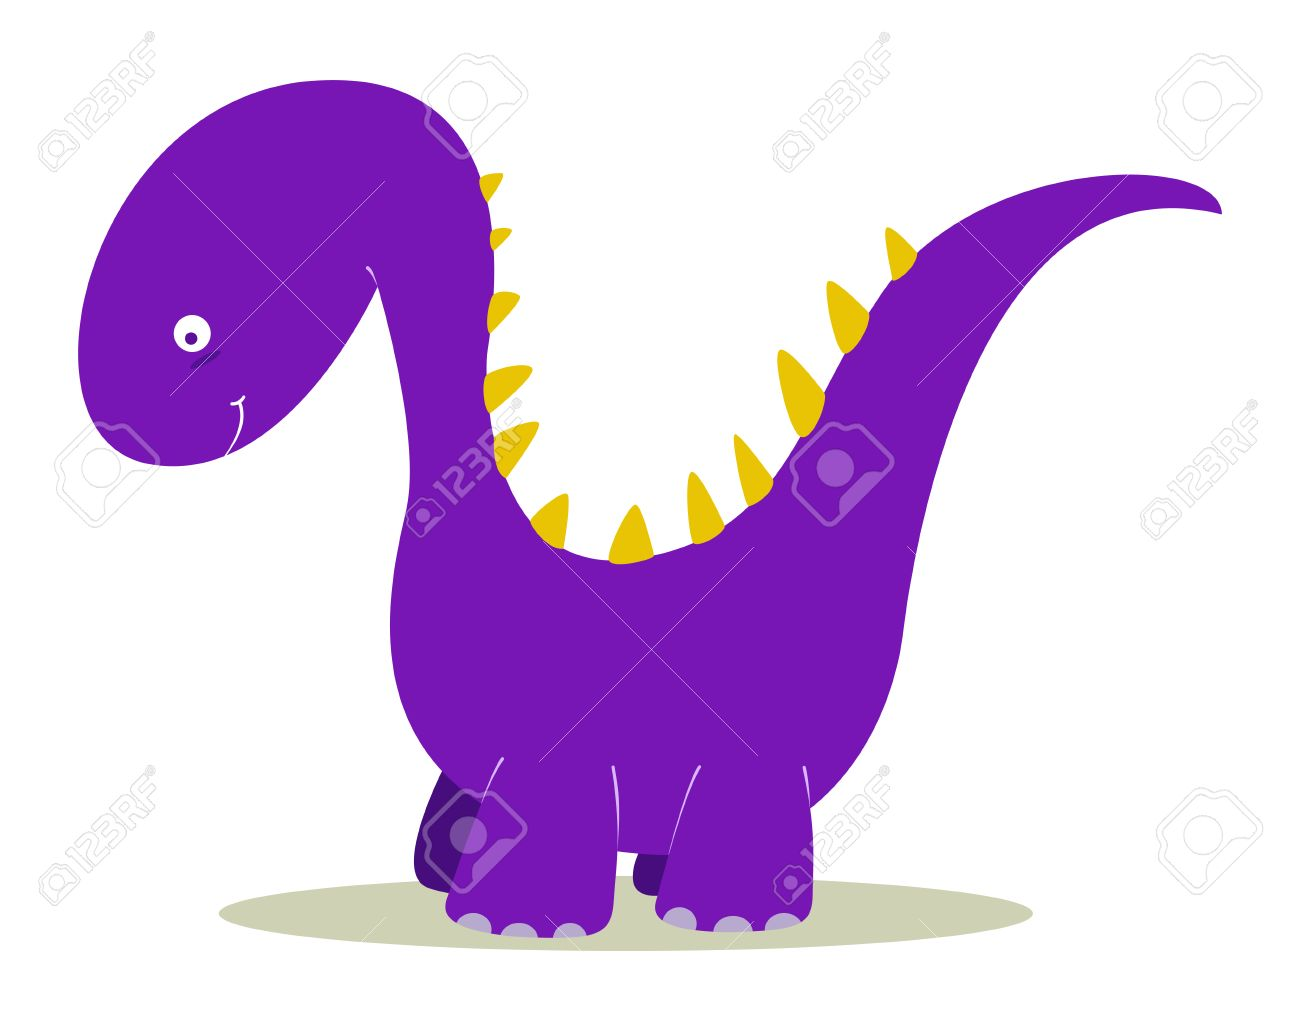 purple dinosaur for kids fun royalty free cliparts vectors and